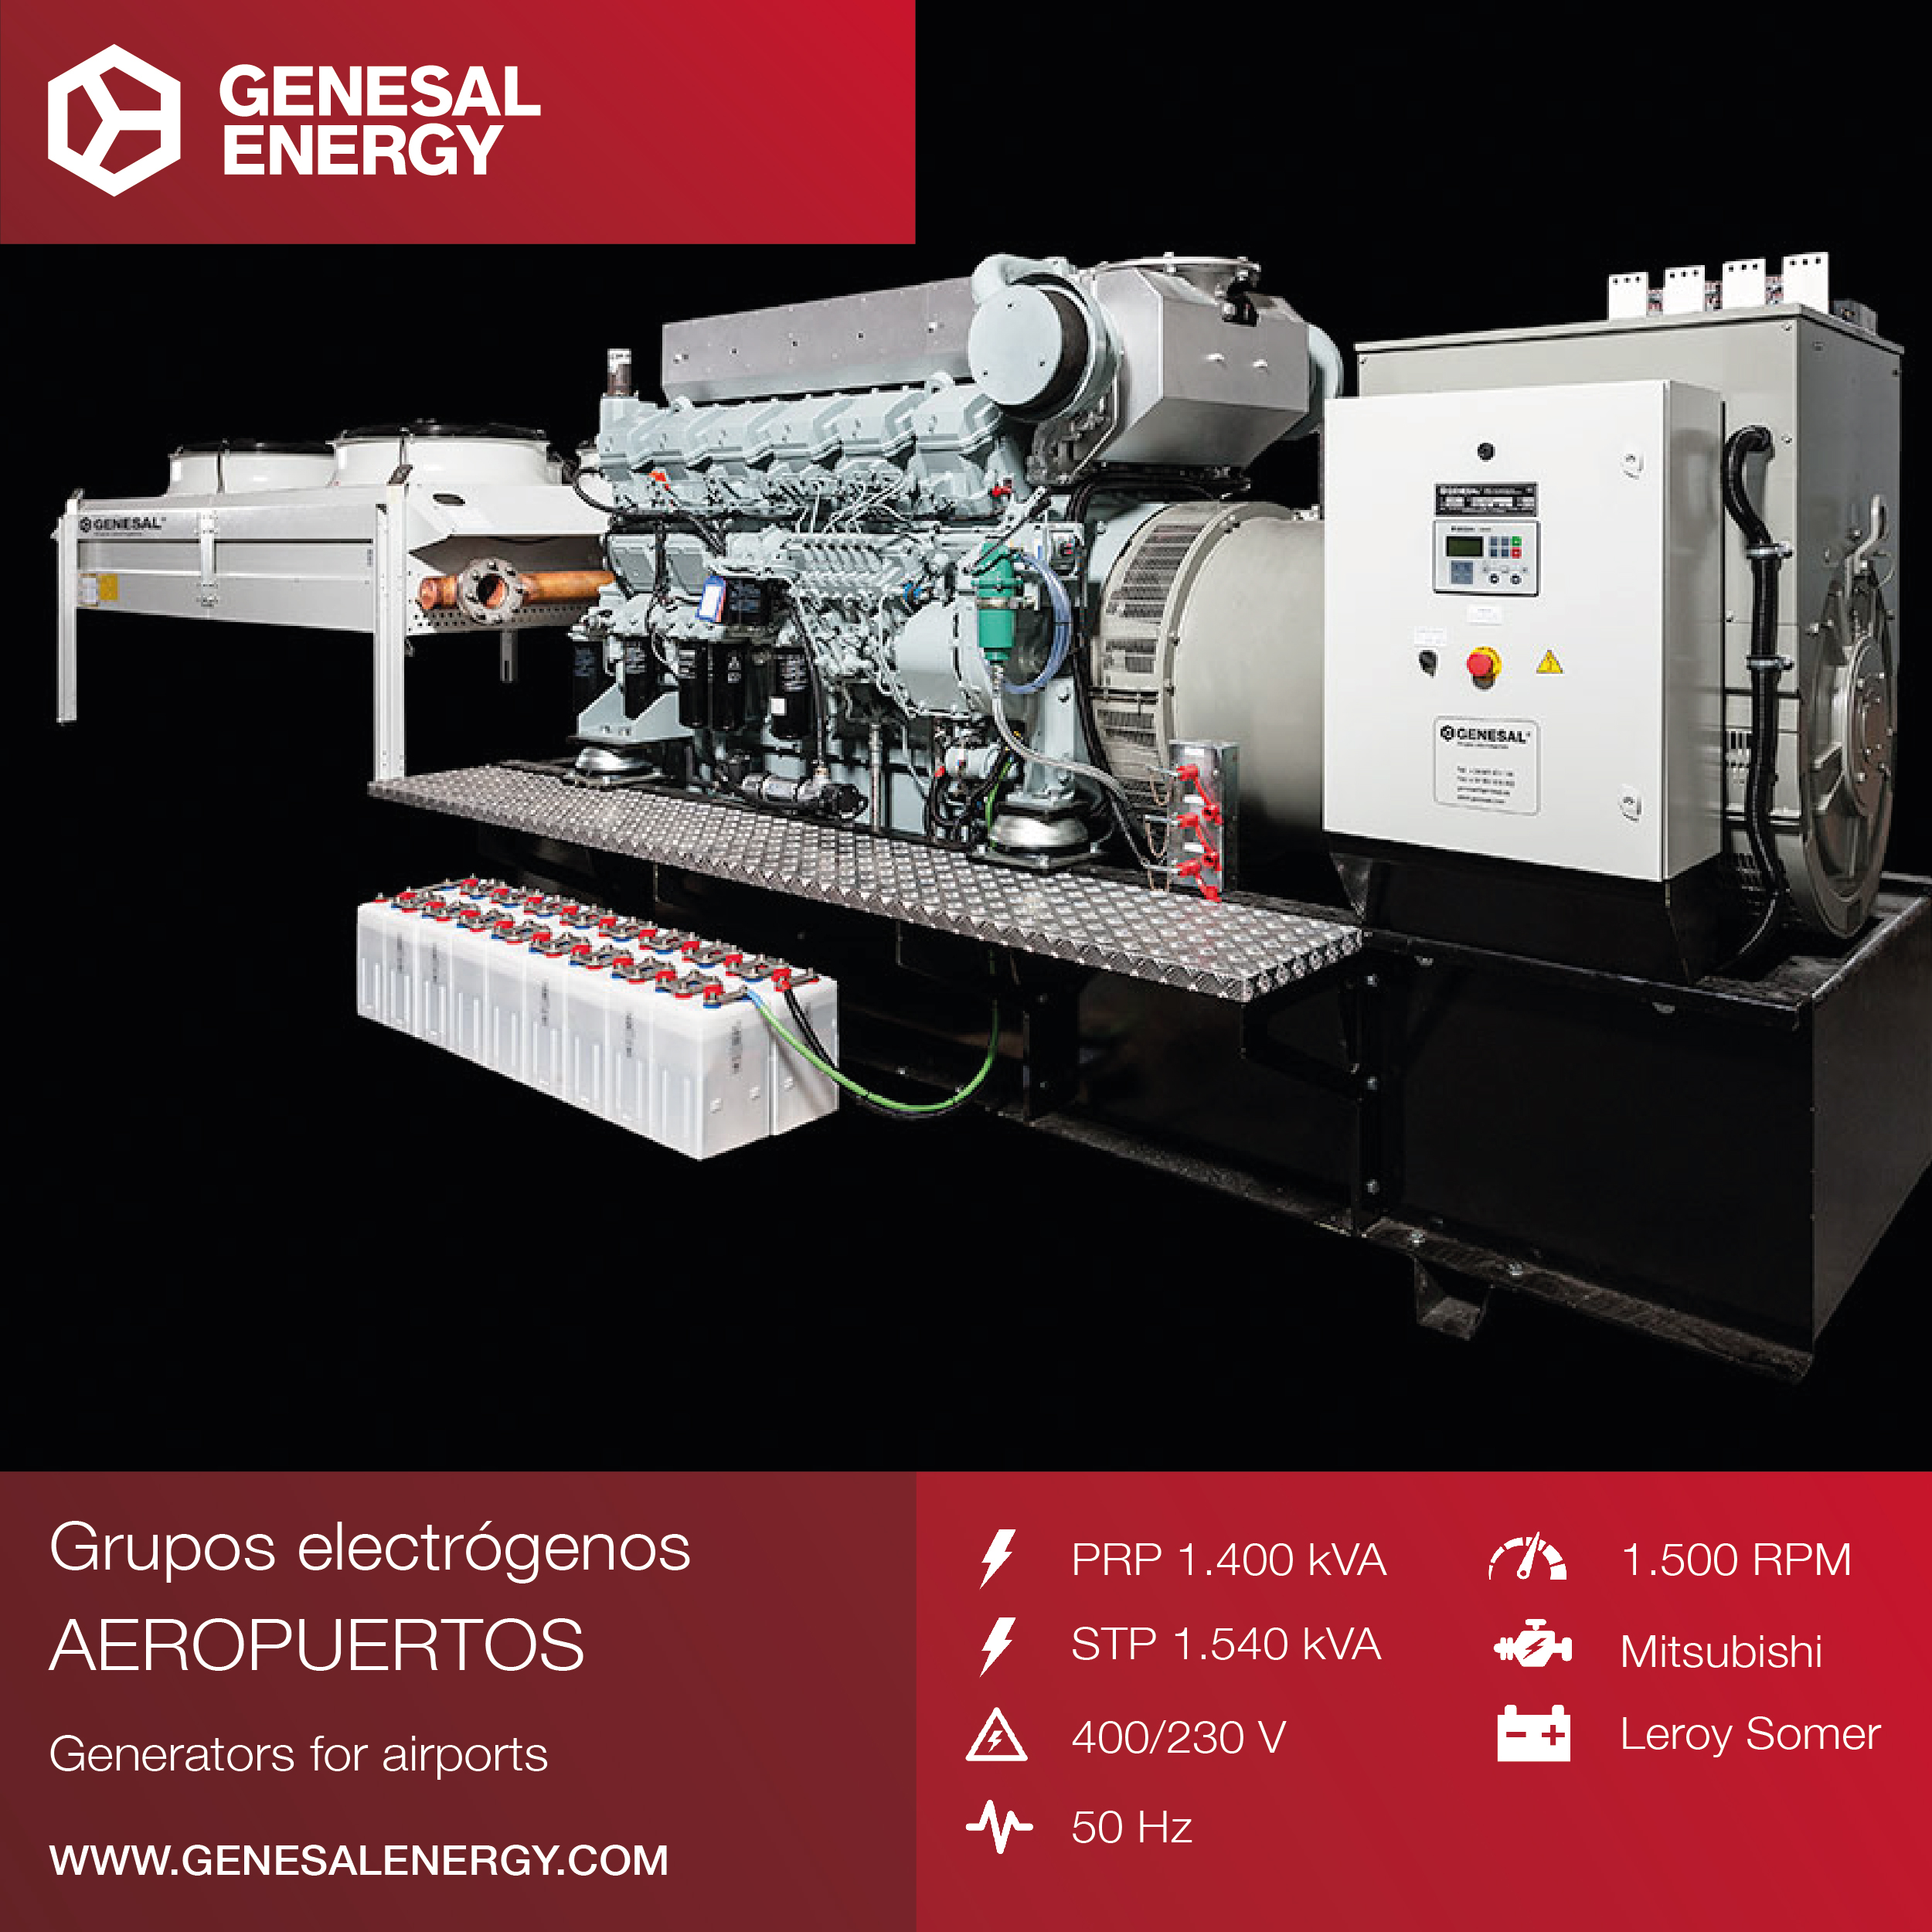 Supply and installation of an adapted genset for the airport of La Coruna in Northwest Spain